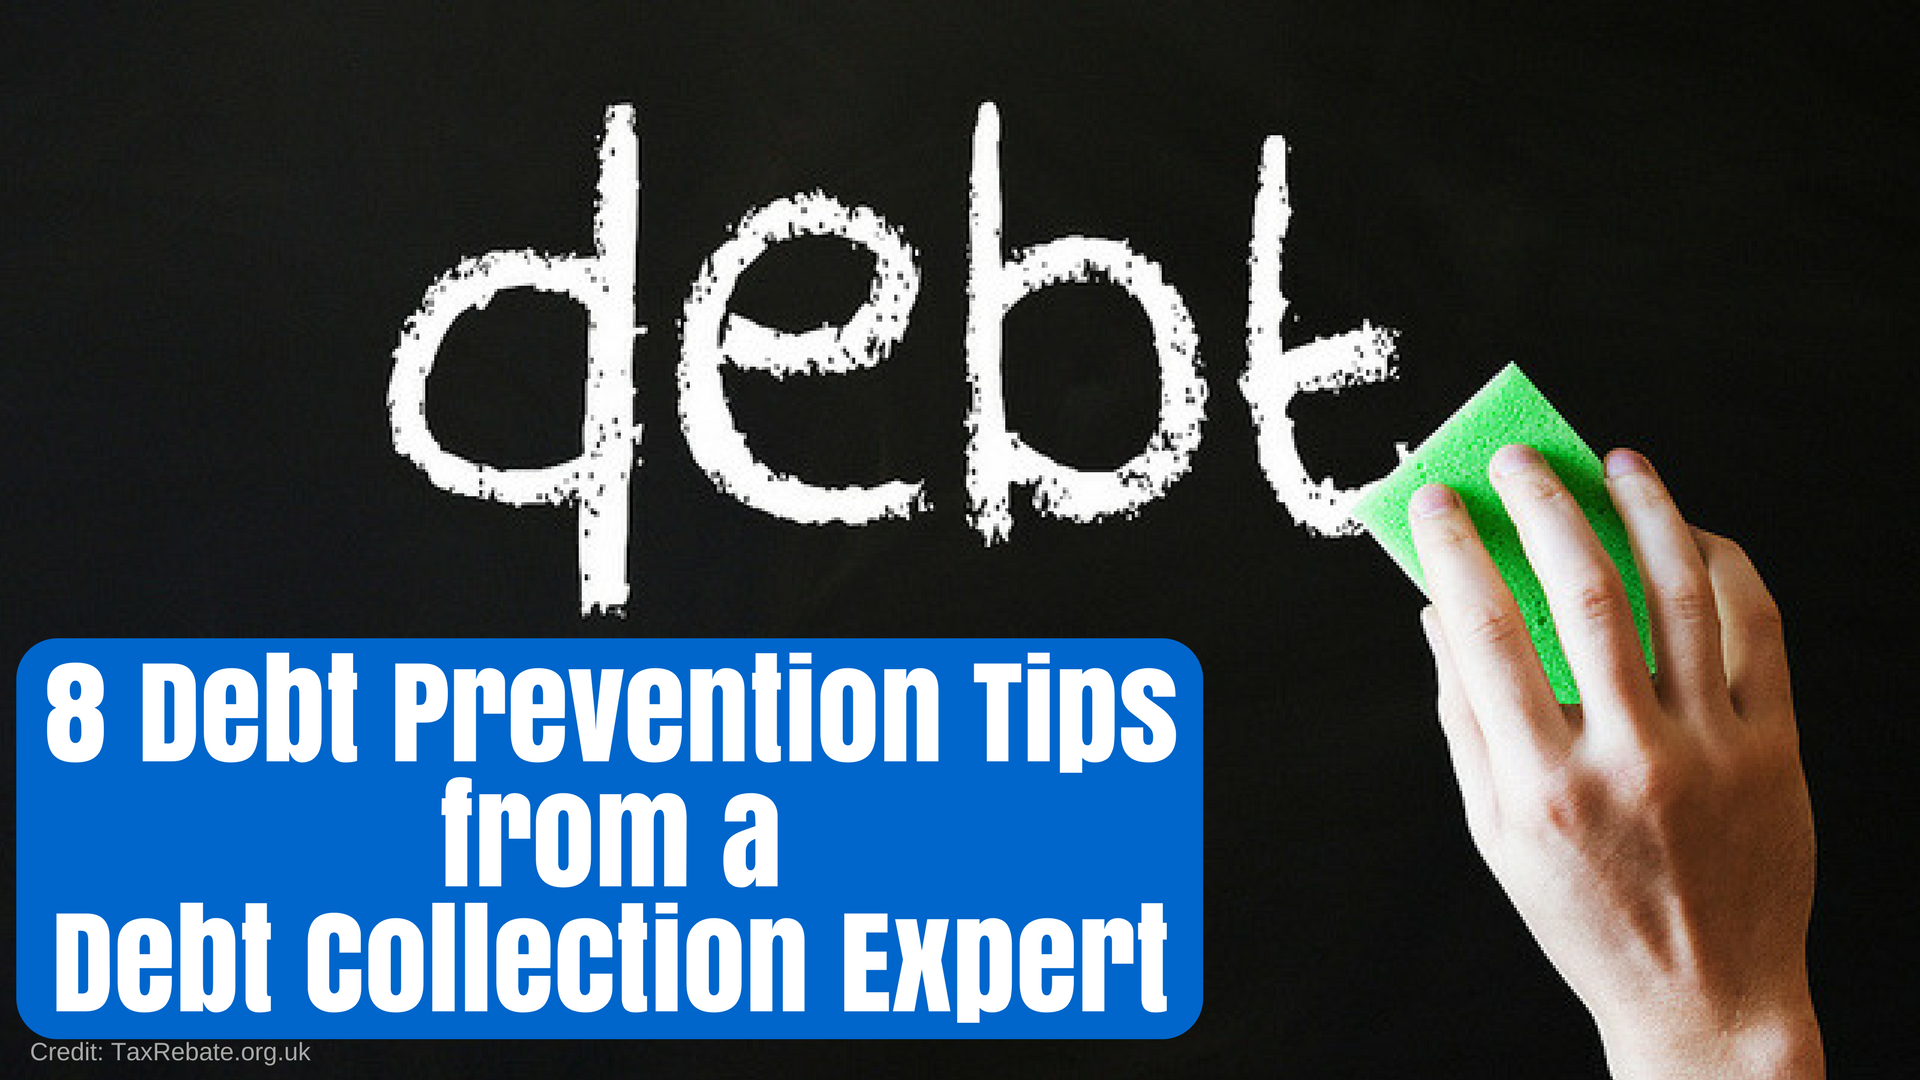 How to Avoid Bad Debts: 8 Debt Prevention Tips from A Debt Collection Expert